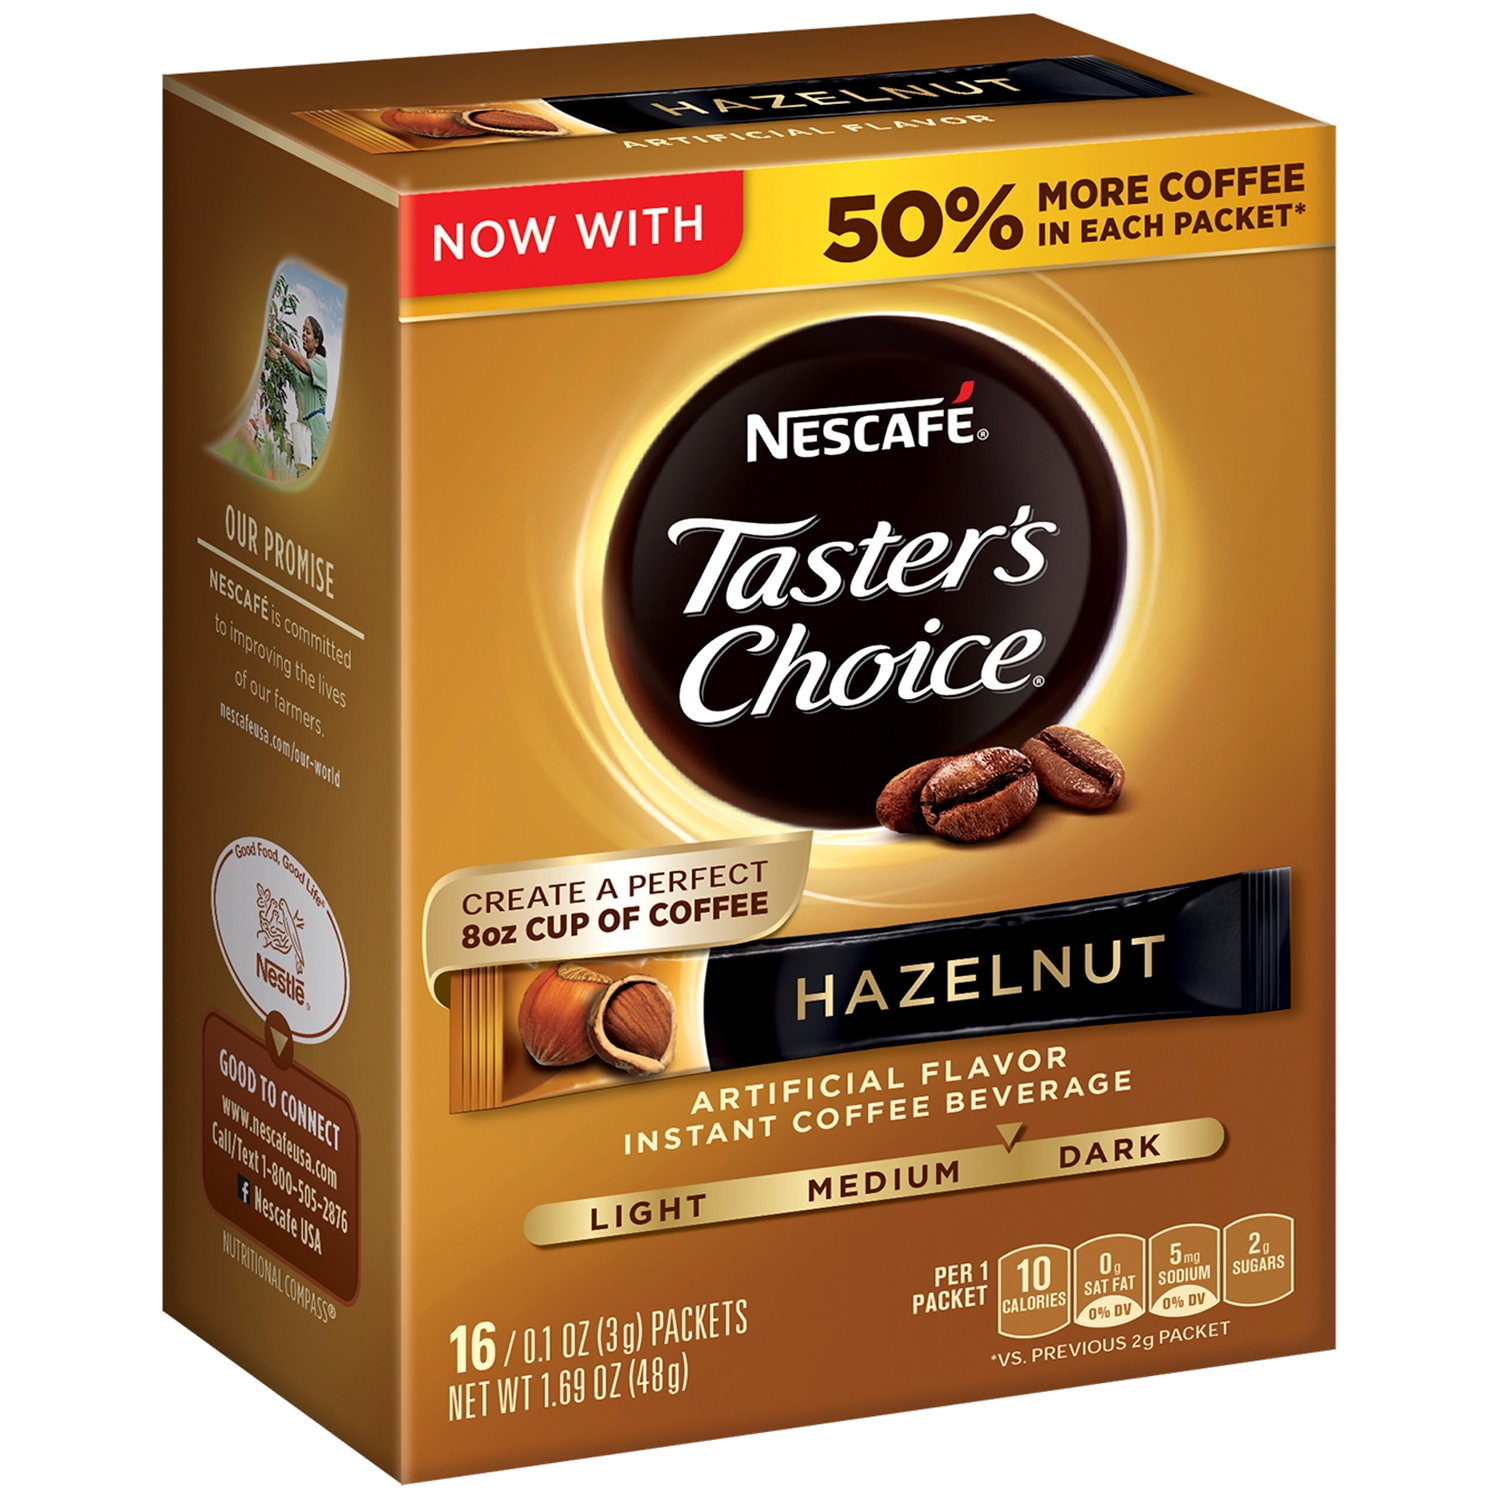 (3 Pack) NESCAFE TASTER'S CHOICE Hazelnut Medium Dark Roast Instant Coffee Beverage 16-0.1 oz. Singles